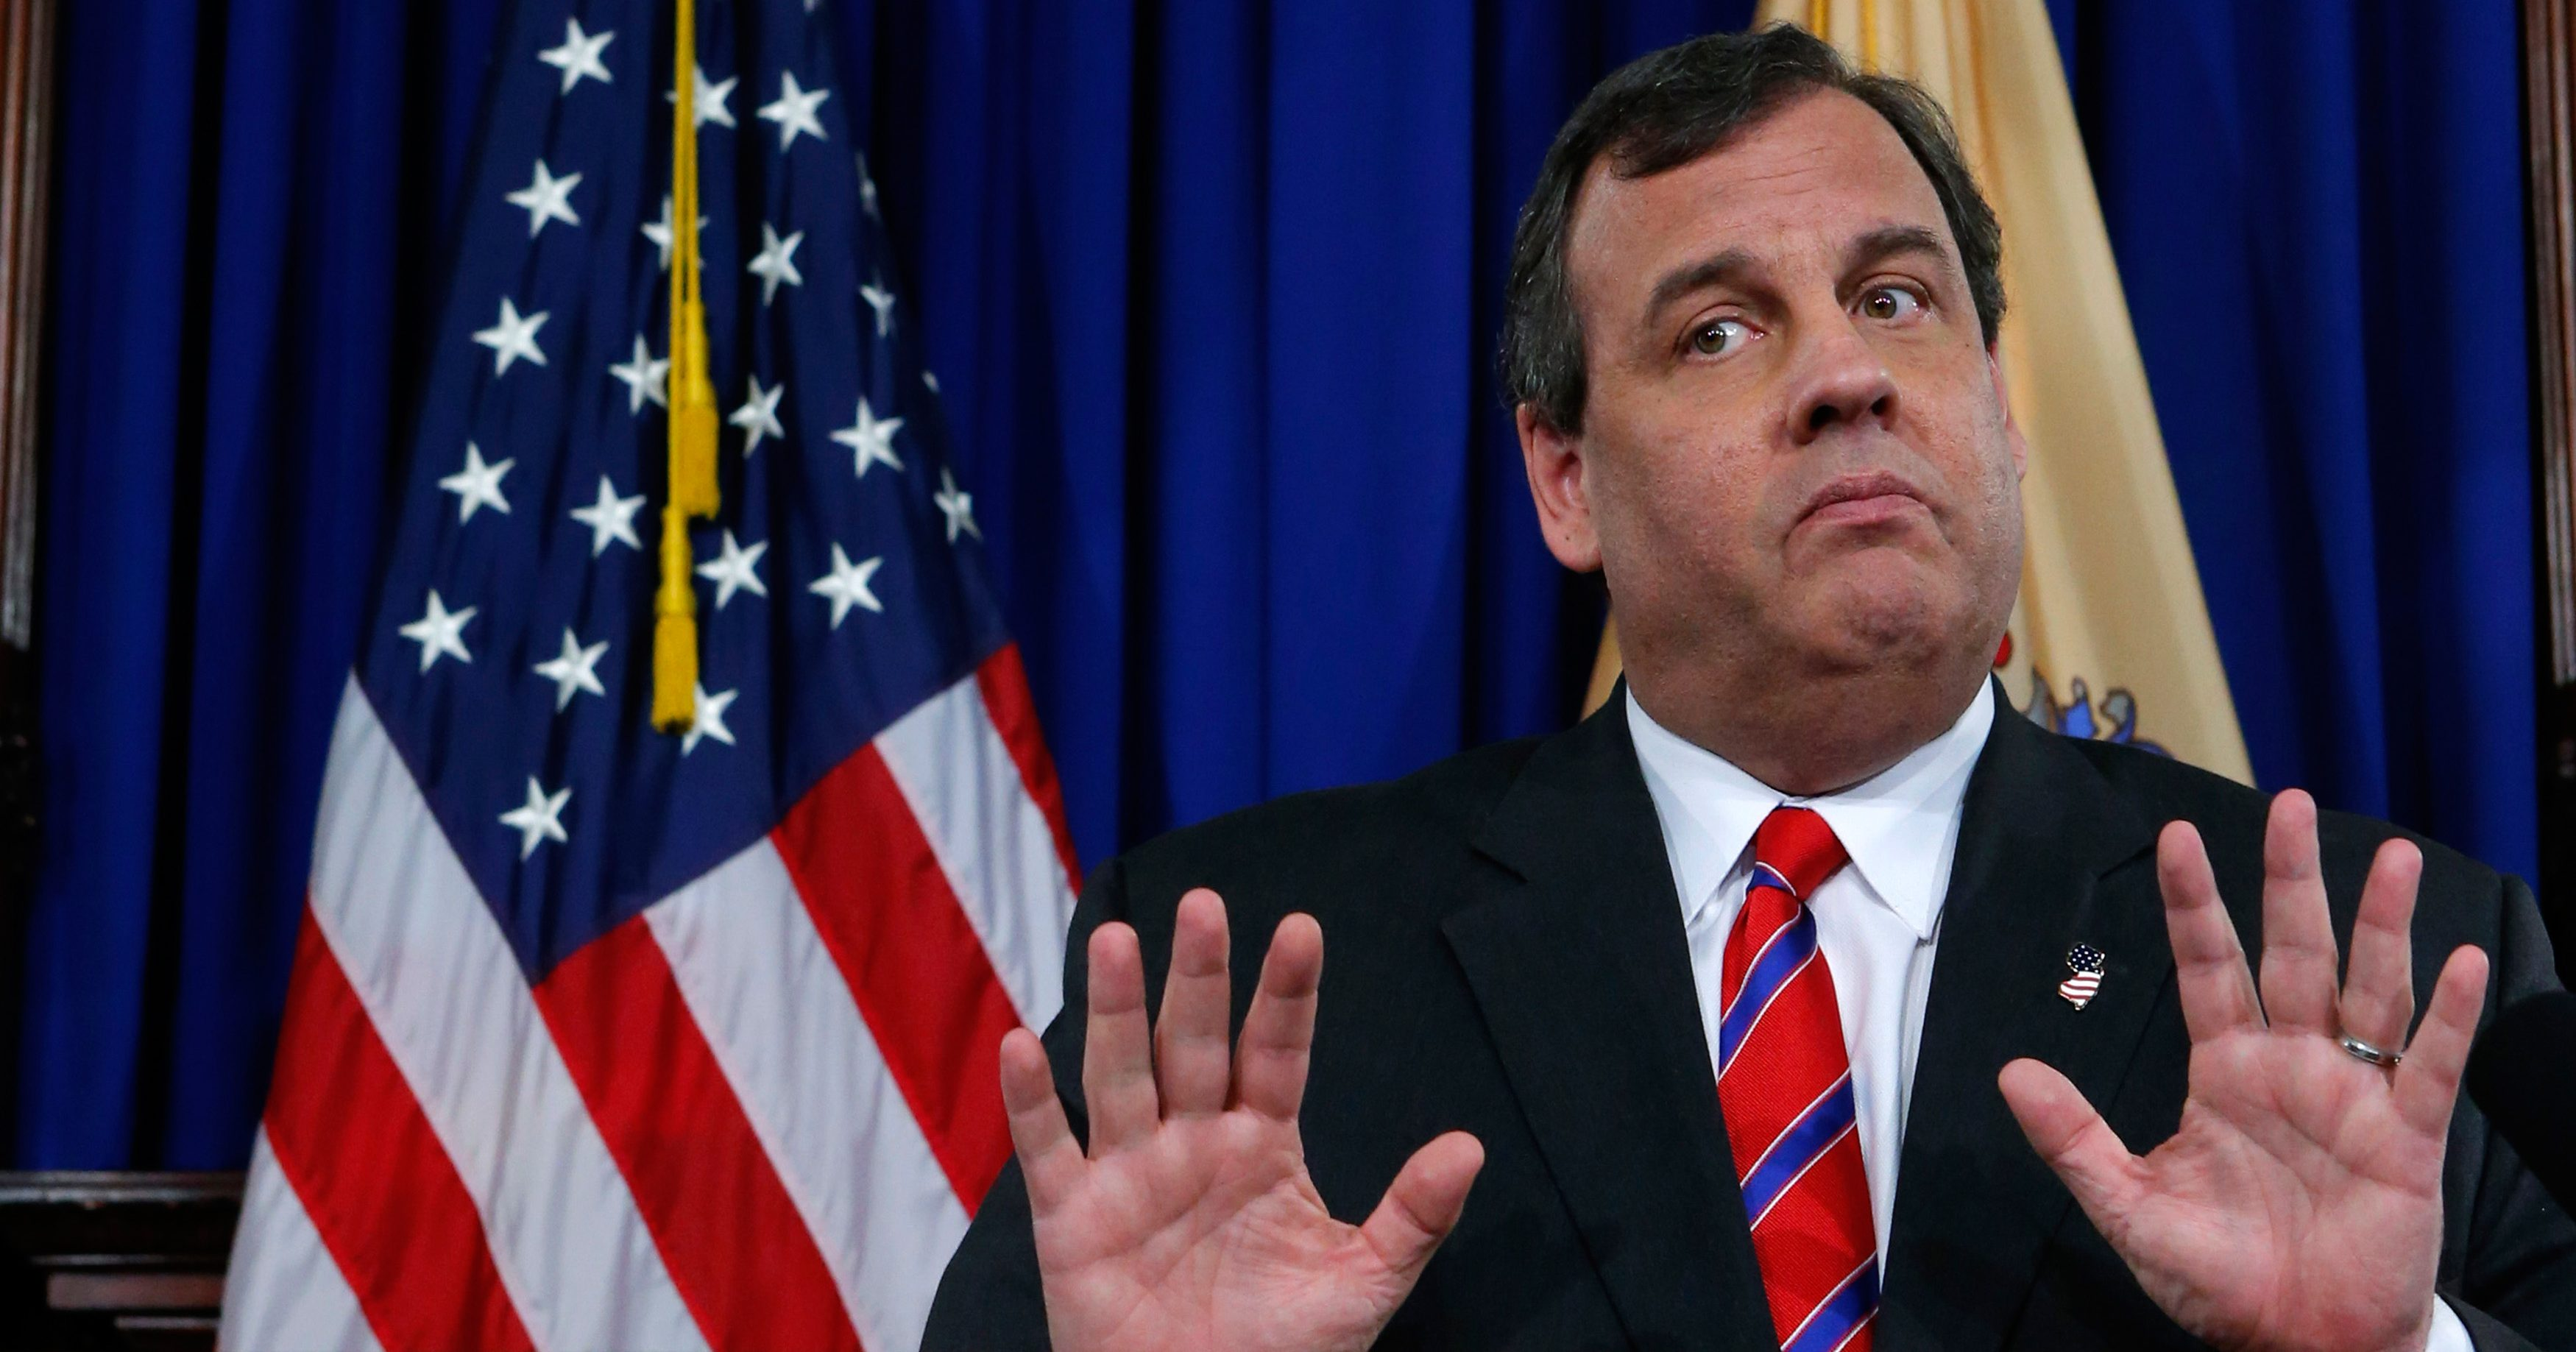 New Jersey Governor Christie reacts to a question during a news conference in Trenton REUTERS/Eduardo Munoz